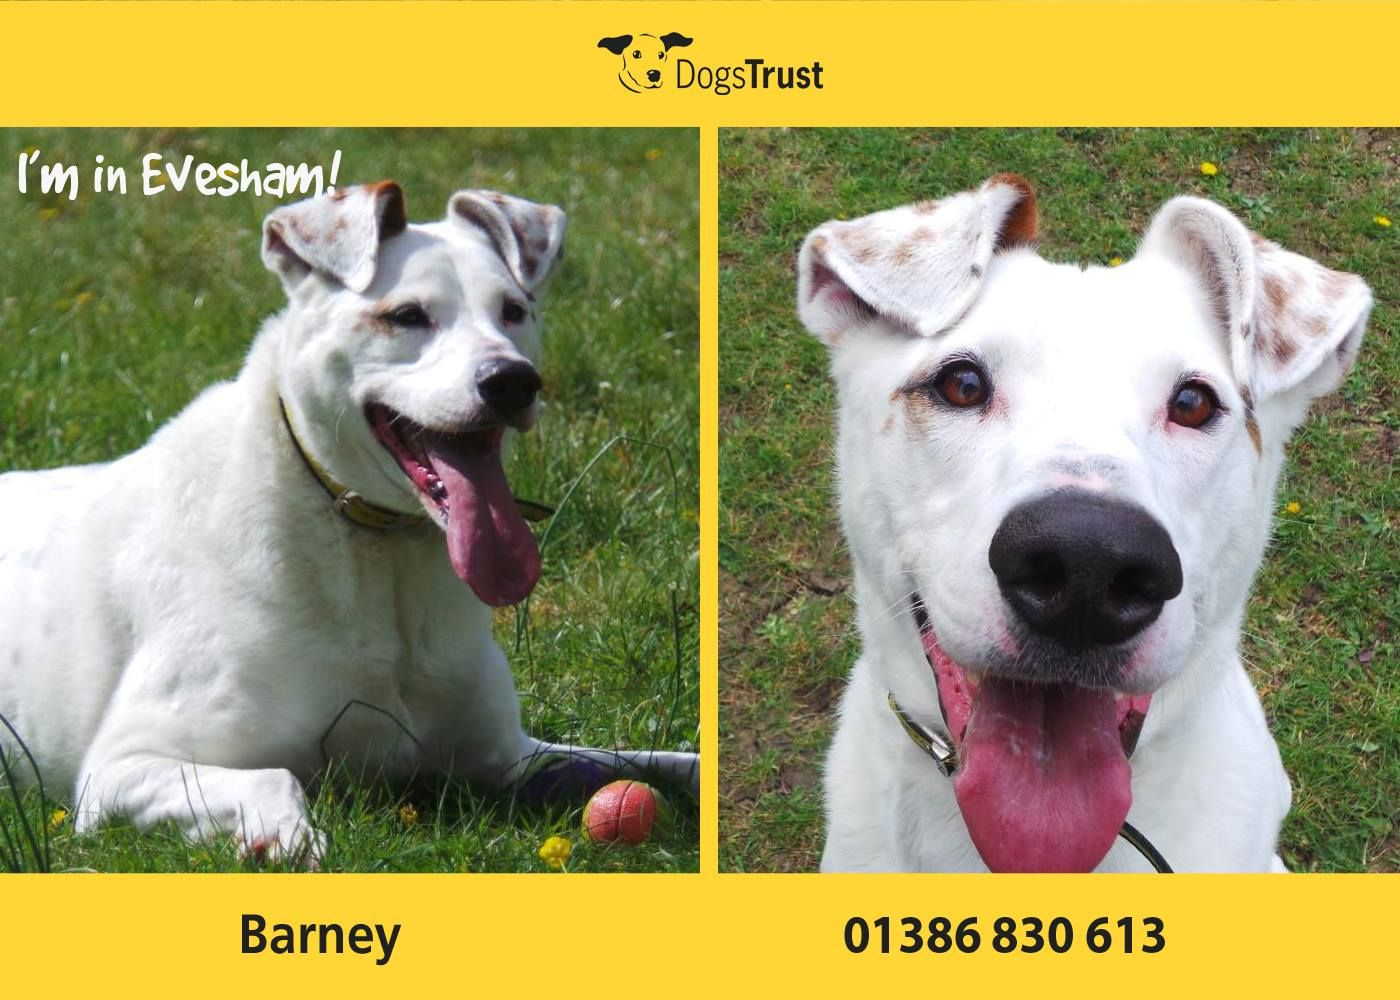 Barney from Evesham is a clever dog who is very confused